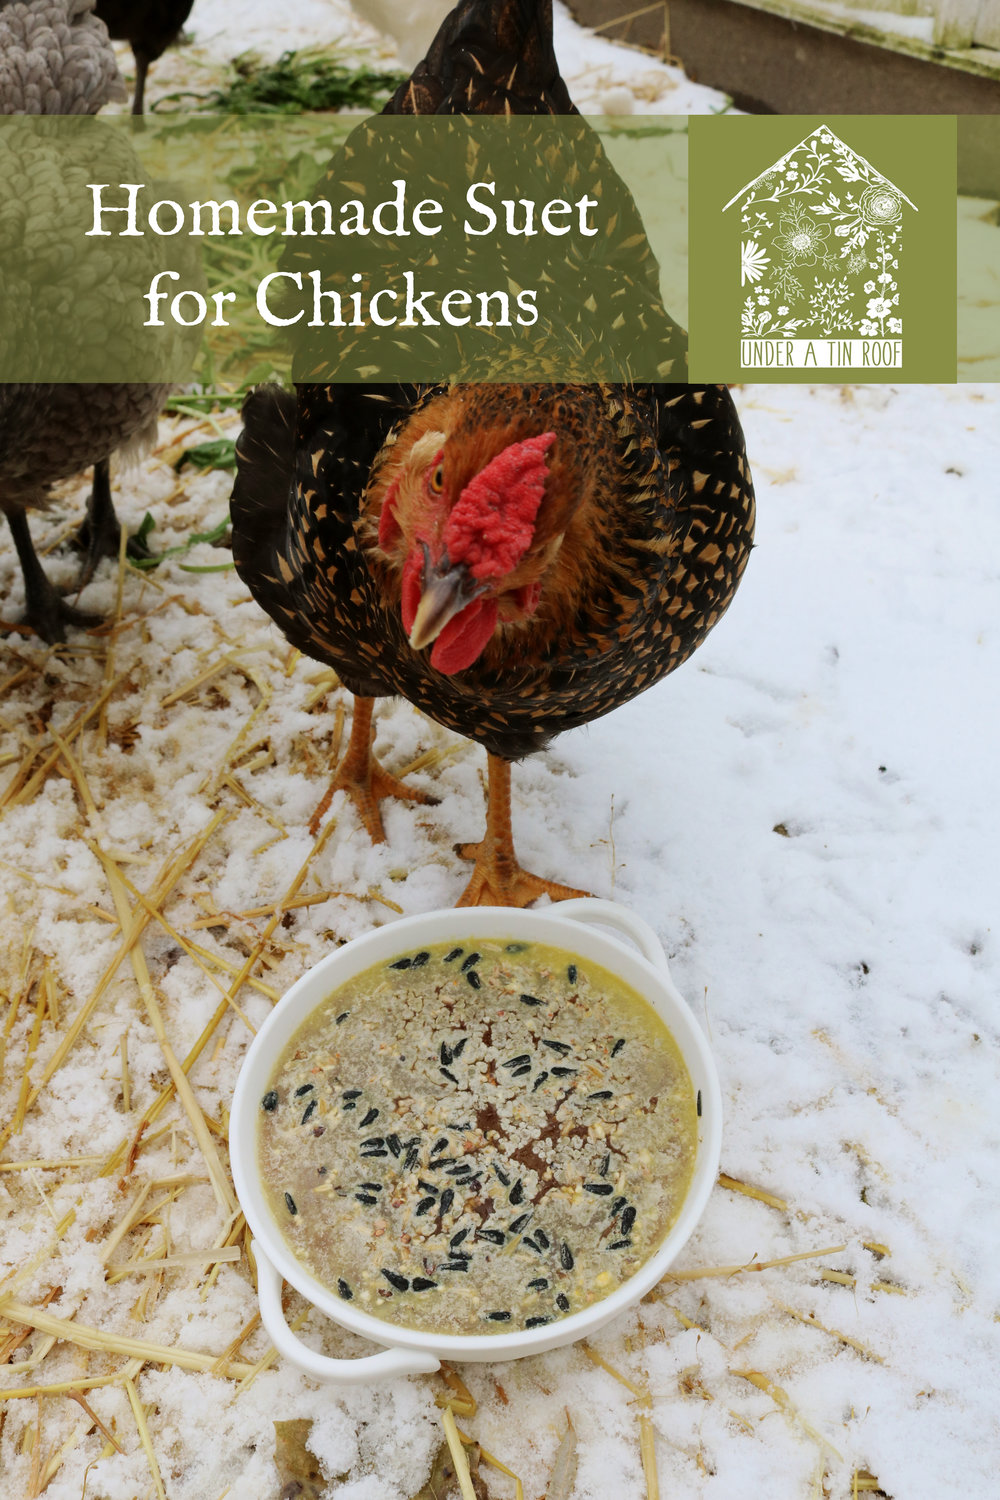 Homemade Suet Cakes for Chickens - Under A Tin Roof Blog